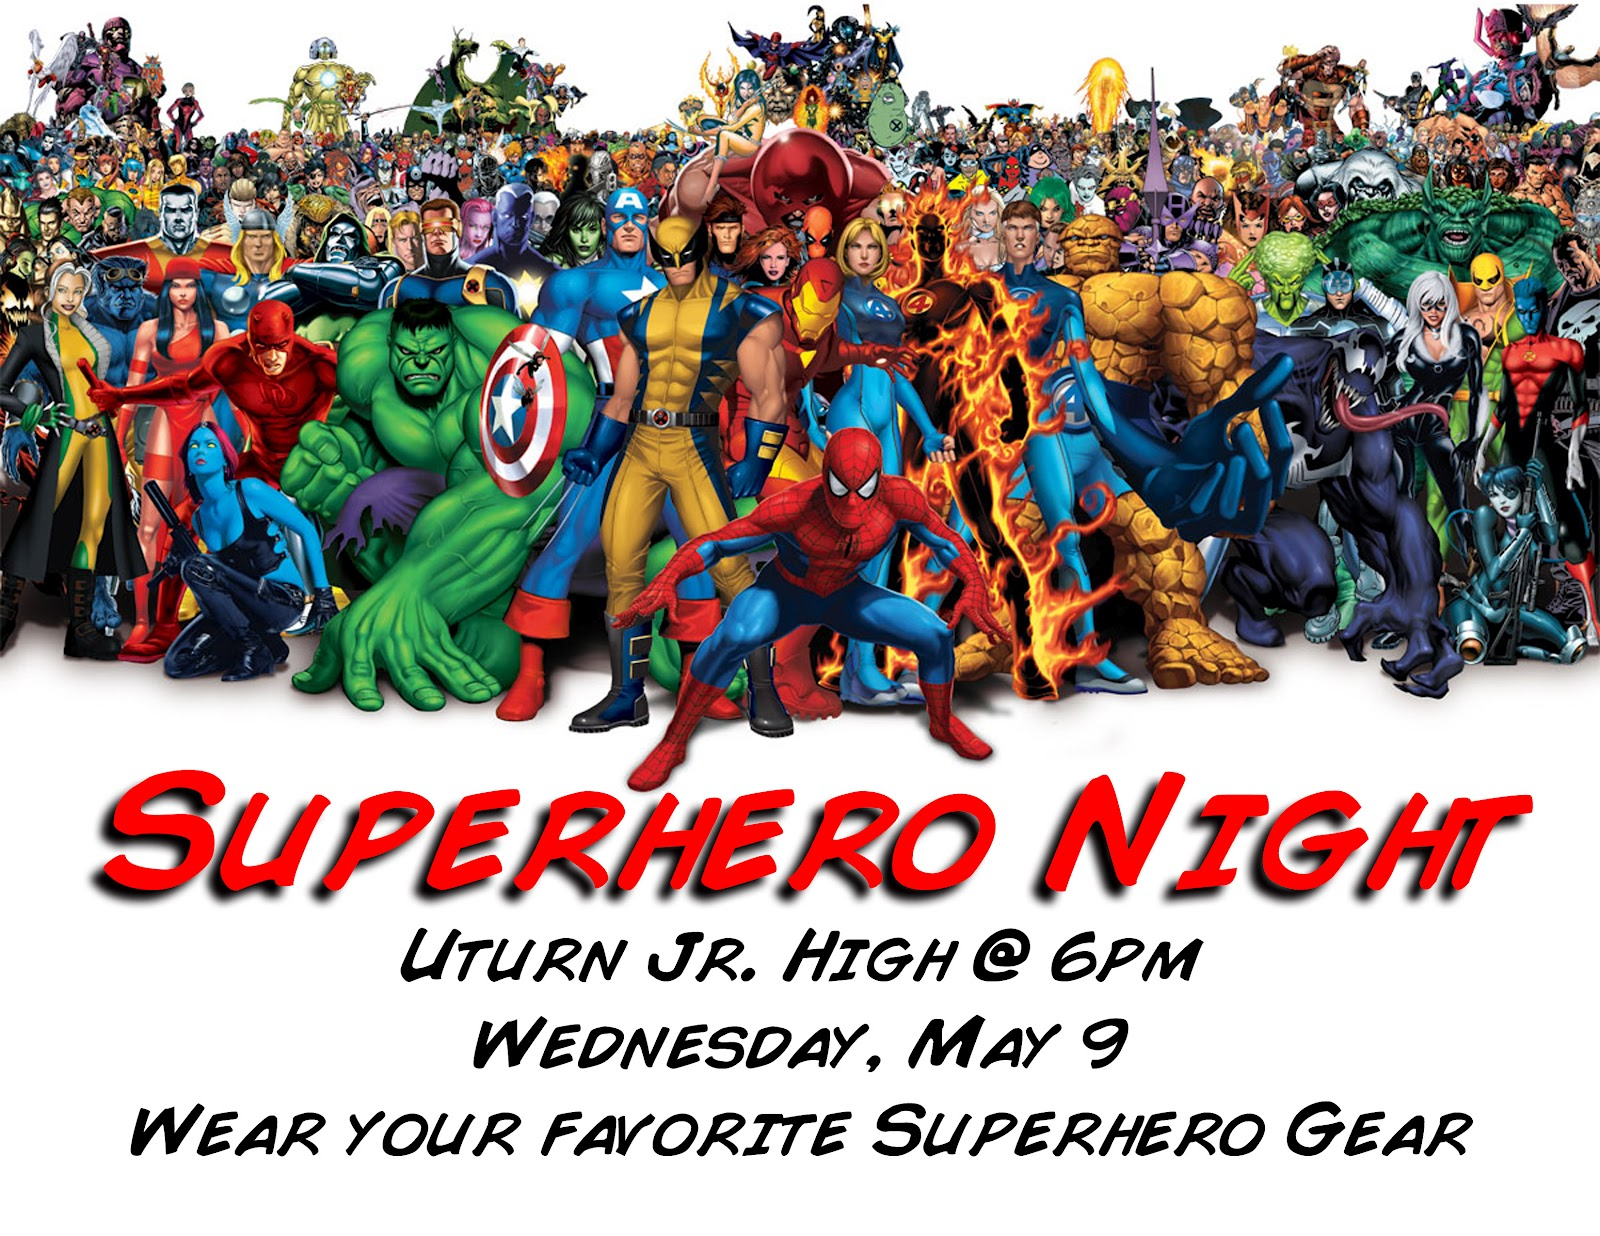 awesome night. We will all wear Superhero gear, we39;ll play Superhero